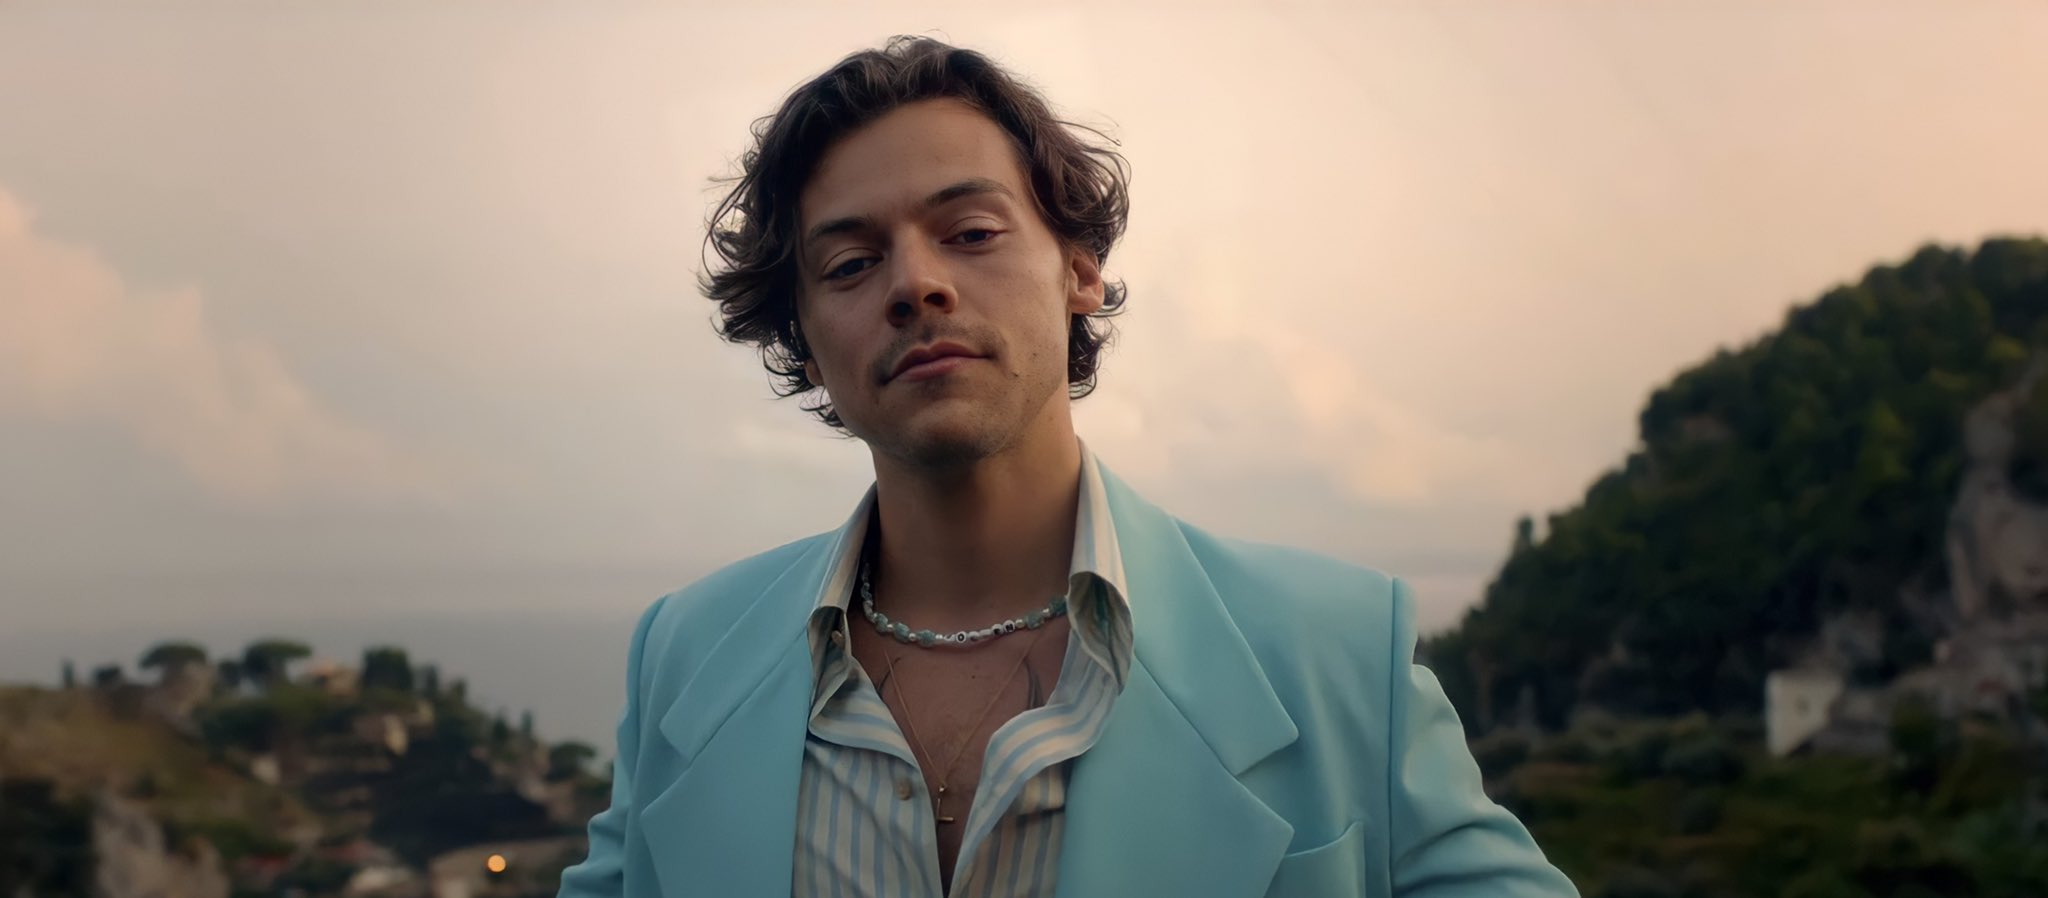 Harry Styles in the 'Golden' music video